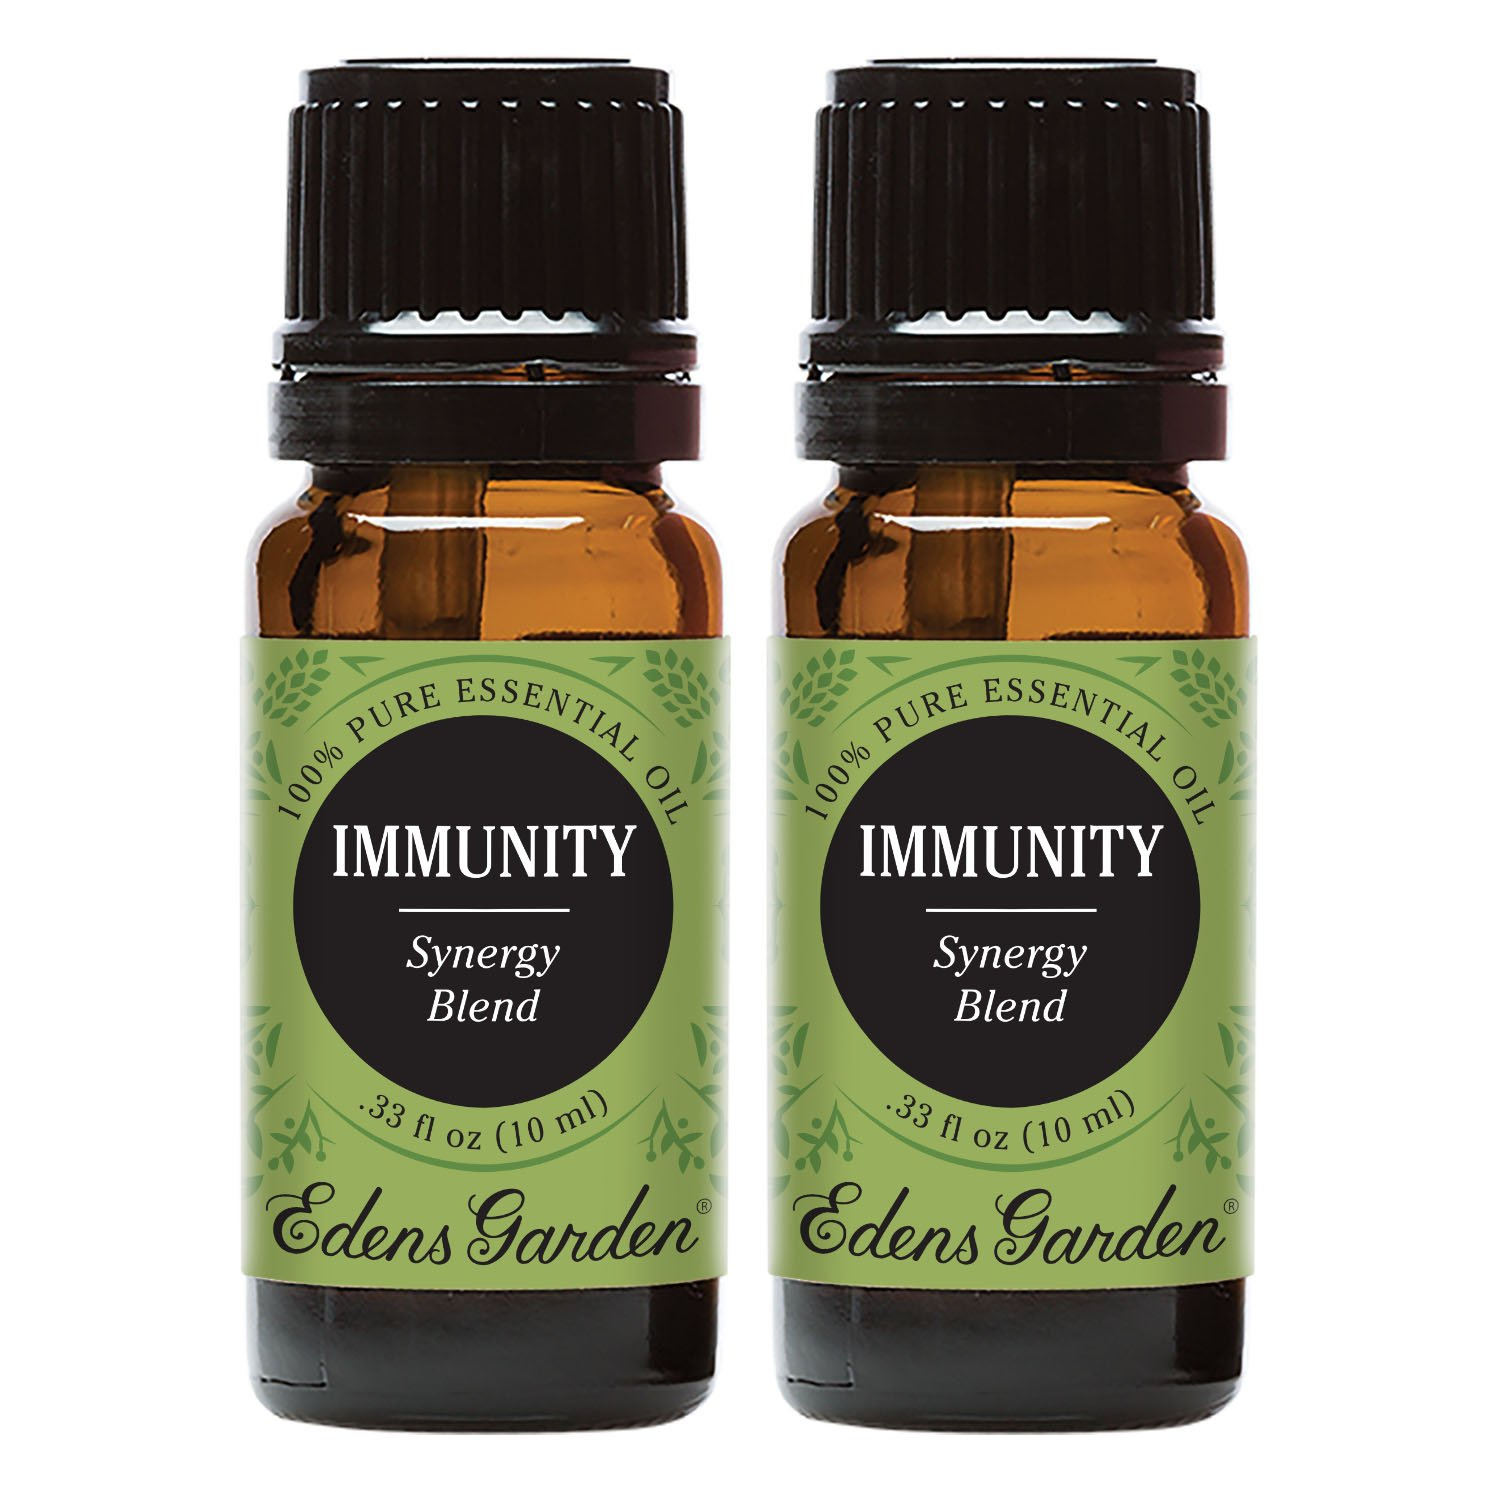 Edens Garden Immunity Essential Oil Synergy Blend, 100% Pure Therapeutic Grade (Highest Quality Aromatherapy Oils- Allergies & Cold Flu), 10 ml Value Pack by Edens Garden